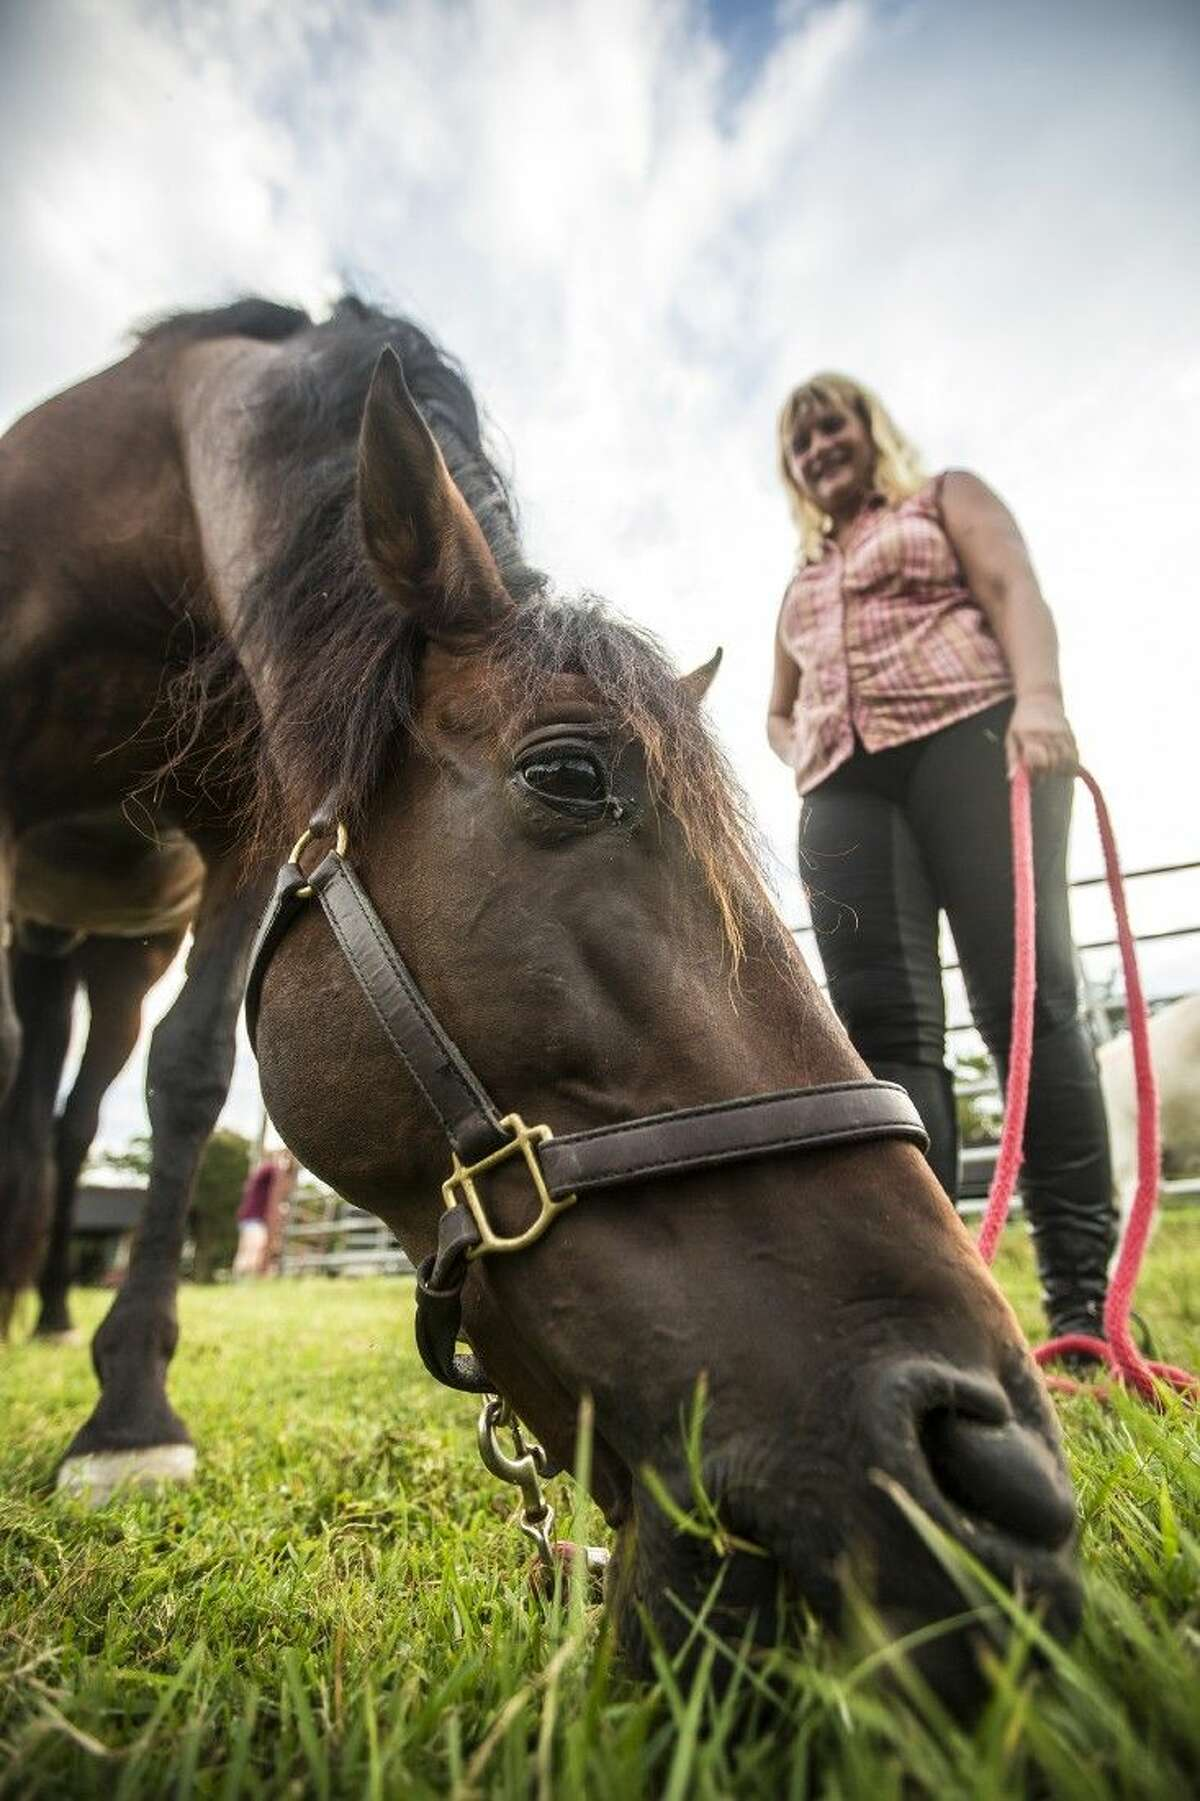 Domingo, a Pura Raza Española or Pure Spanish Horse, grazes while his owner, Marie Gercke watches at Trail's End Stables on Aug. 27, 2014, in Kingwood's Deer Ridge Park. Gercke said that Domingo's blood line has been traced back to horses living in Spain in the 1400s.